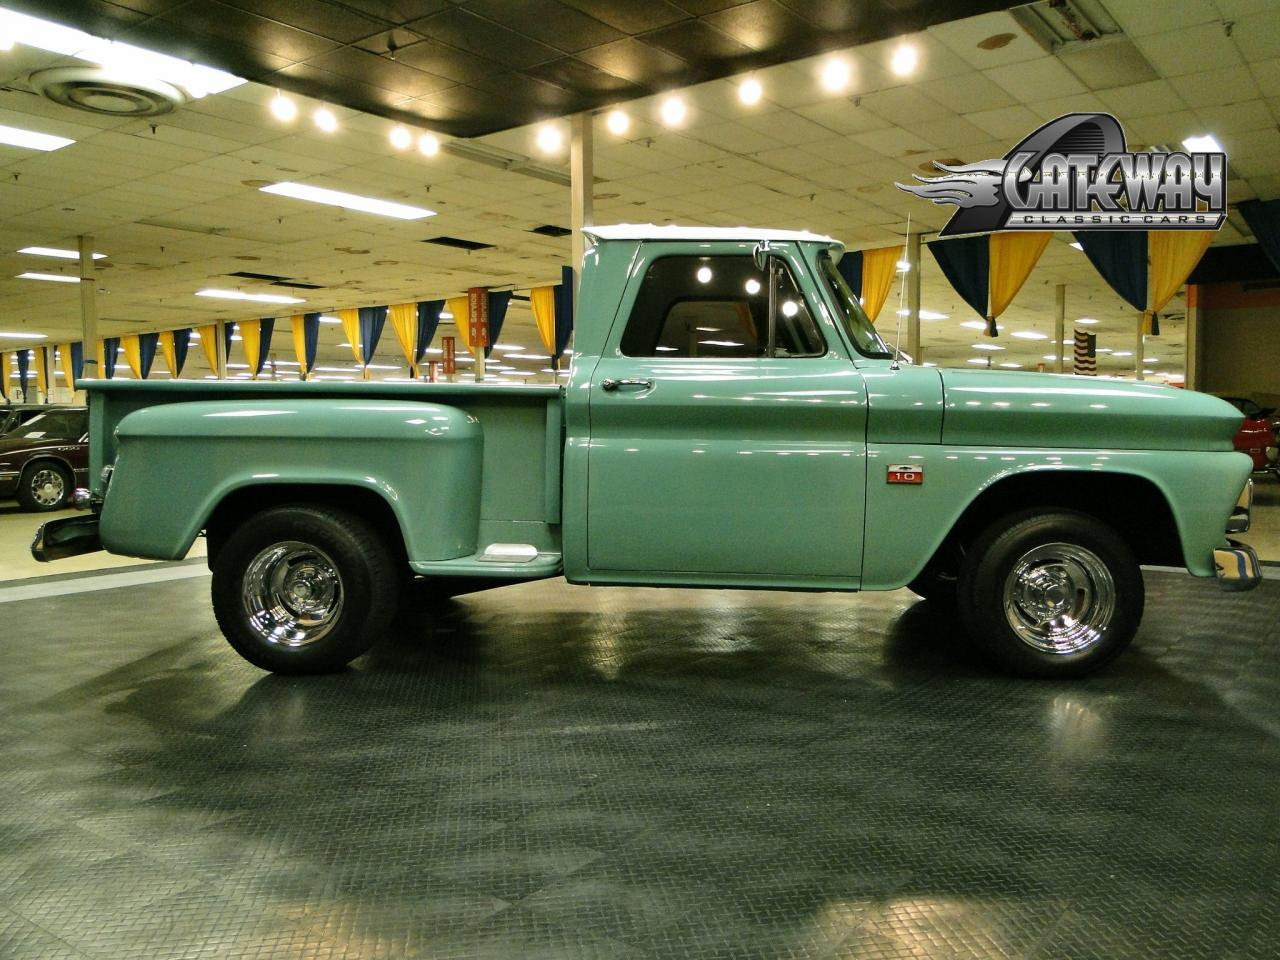 All Chevy chevy c10 craigslist : All Chevy » 1966 Chevrolet C10 For Sale - Old Chevy Photos ...